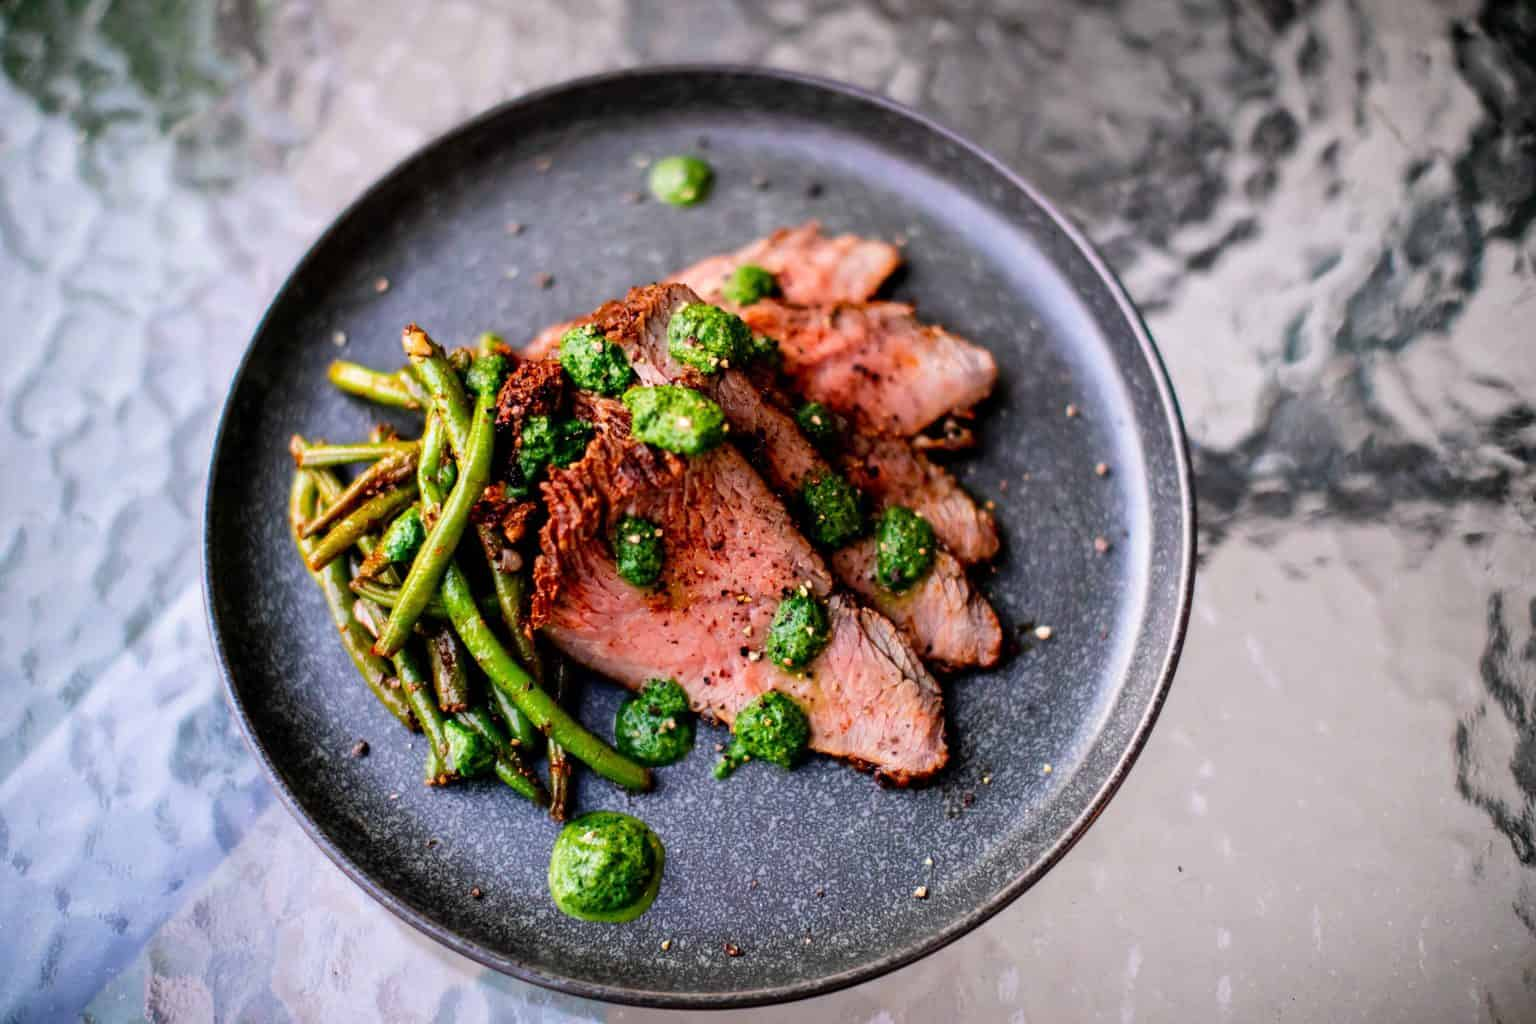 Finished sous vide tri tip recipe with vegetables on a plate